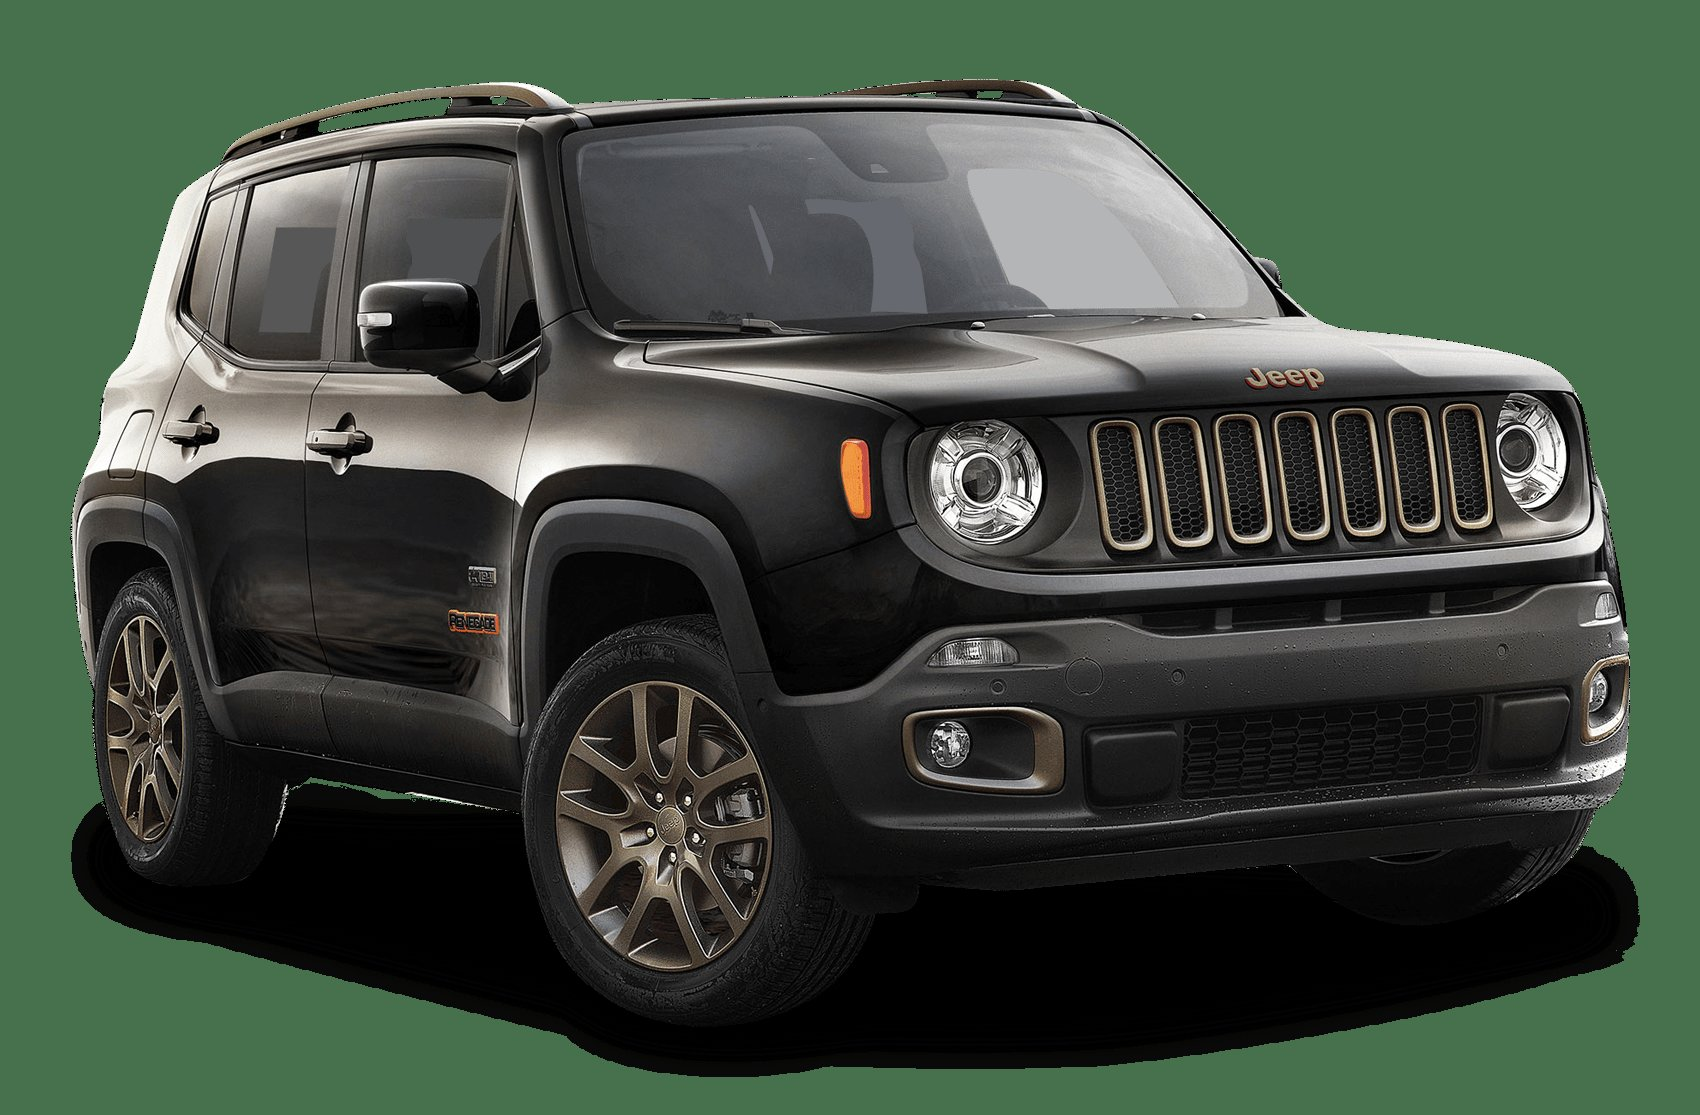 Latest Black Jeep Renegade Car Png Image Pngpix Free Download